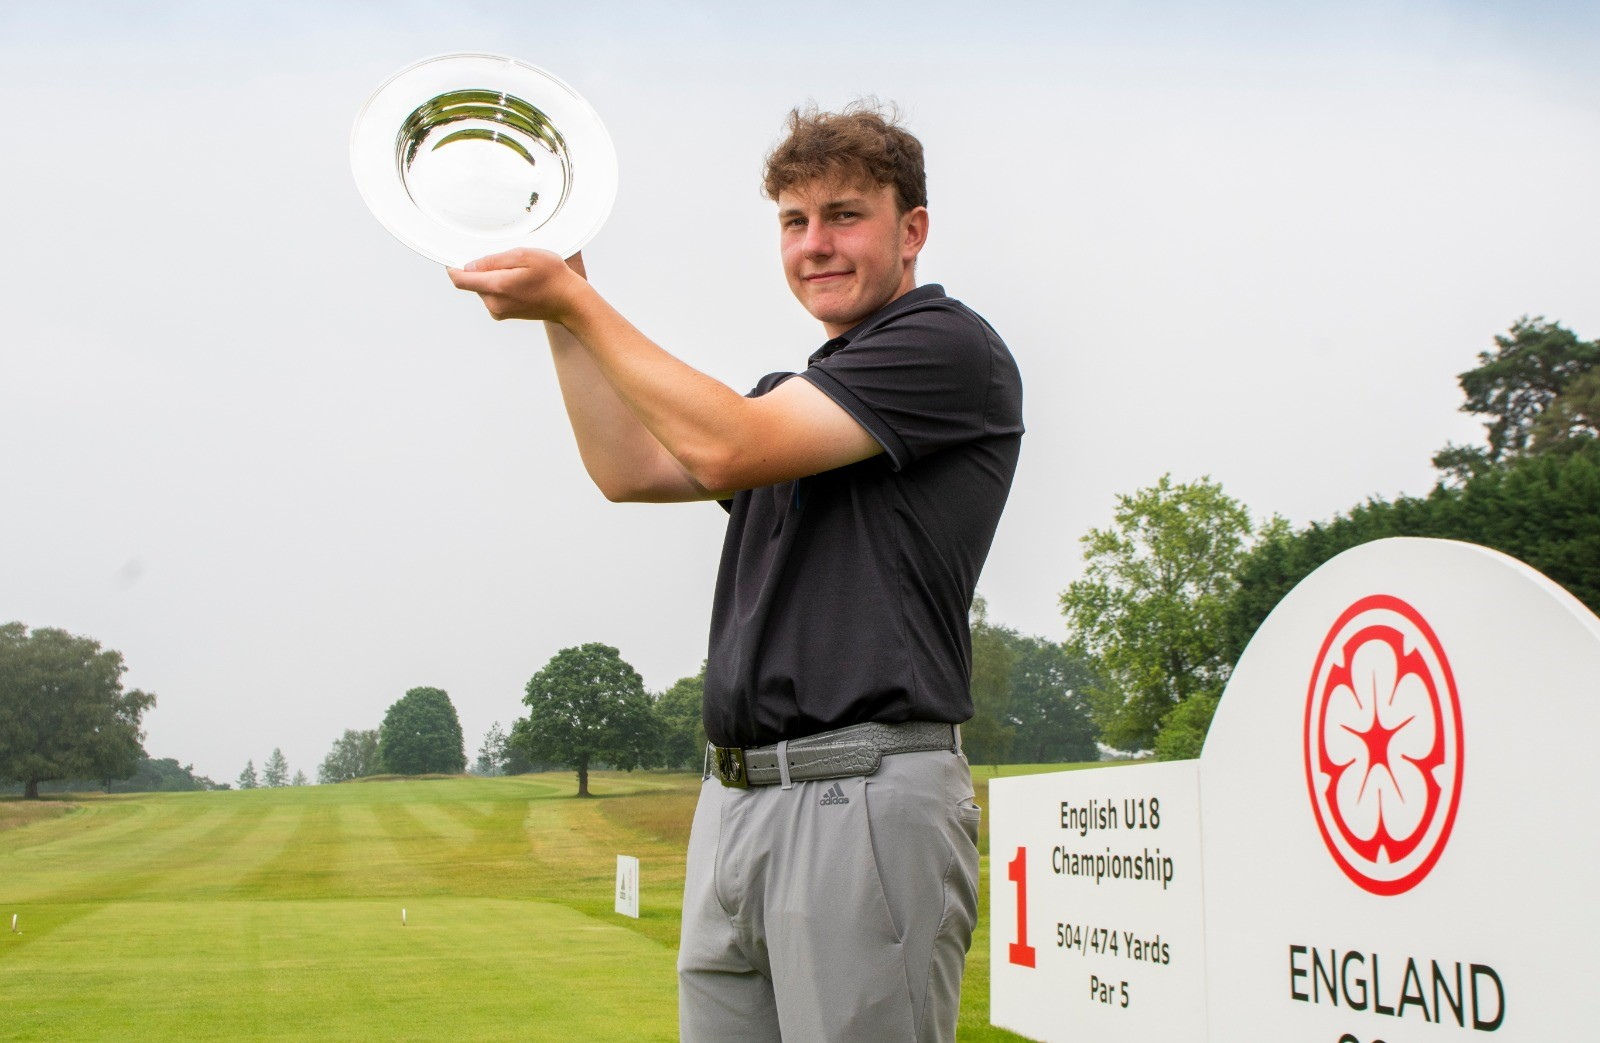 English Under 18 Championship: Forrester makes history with deserved victory